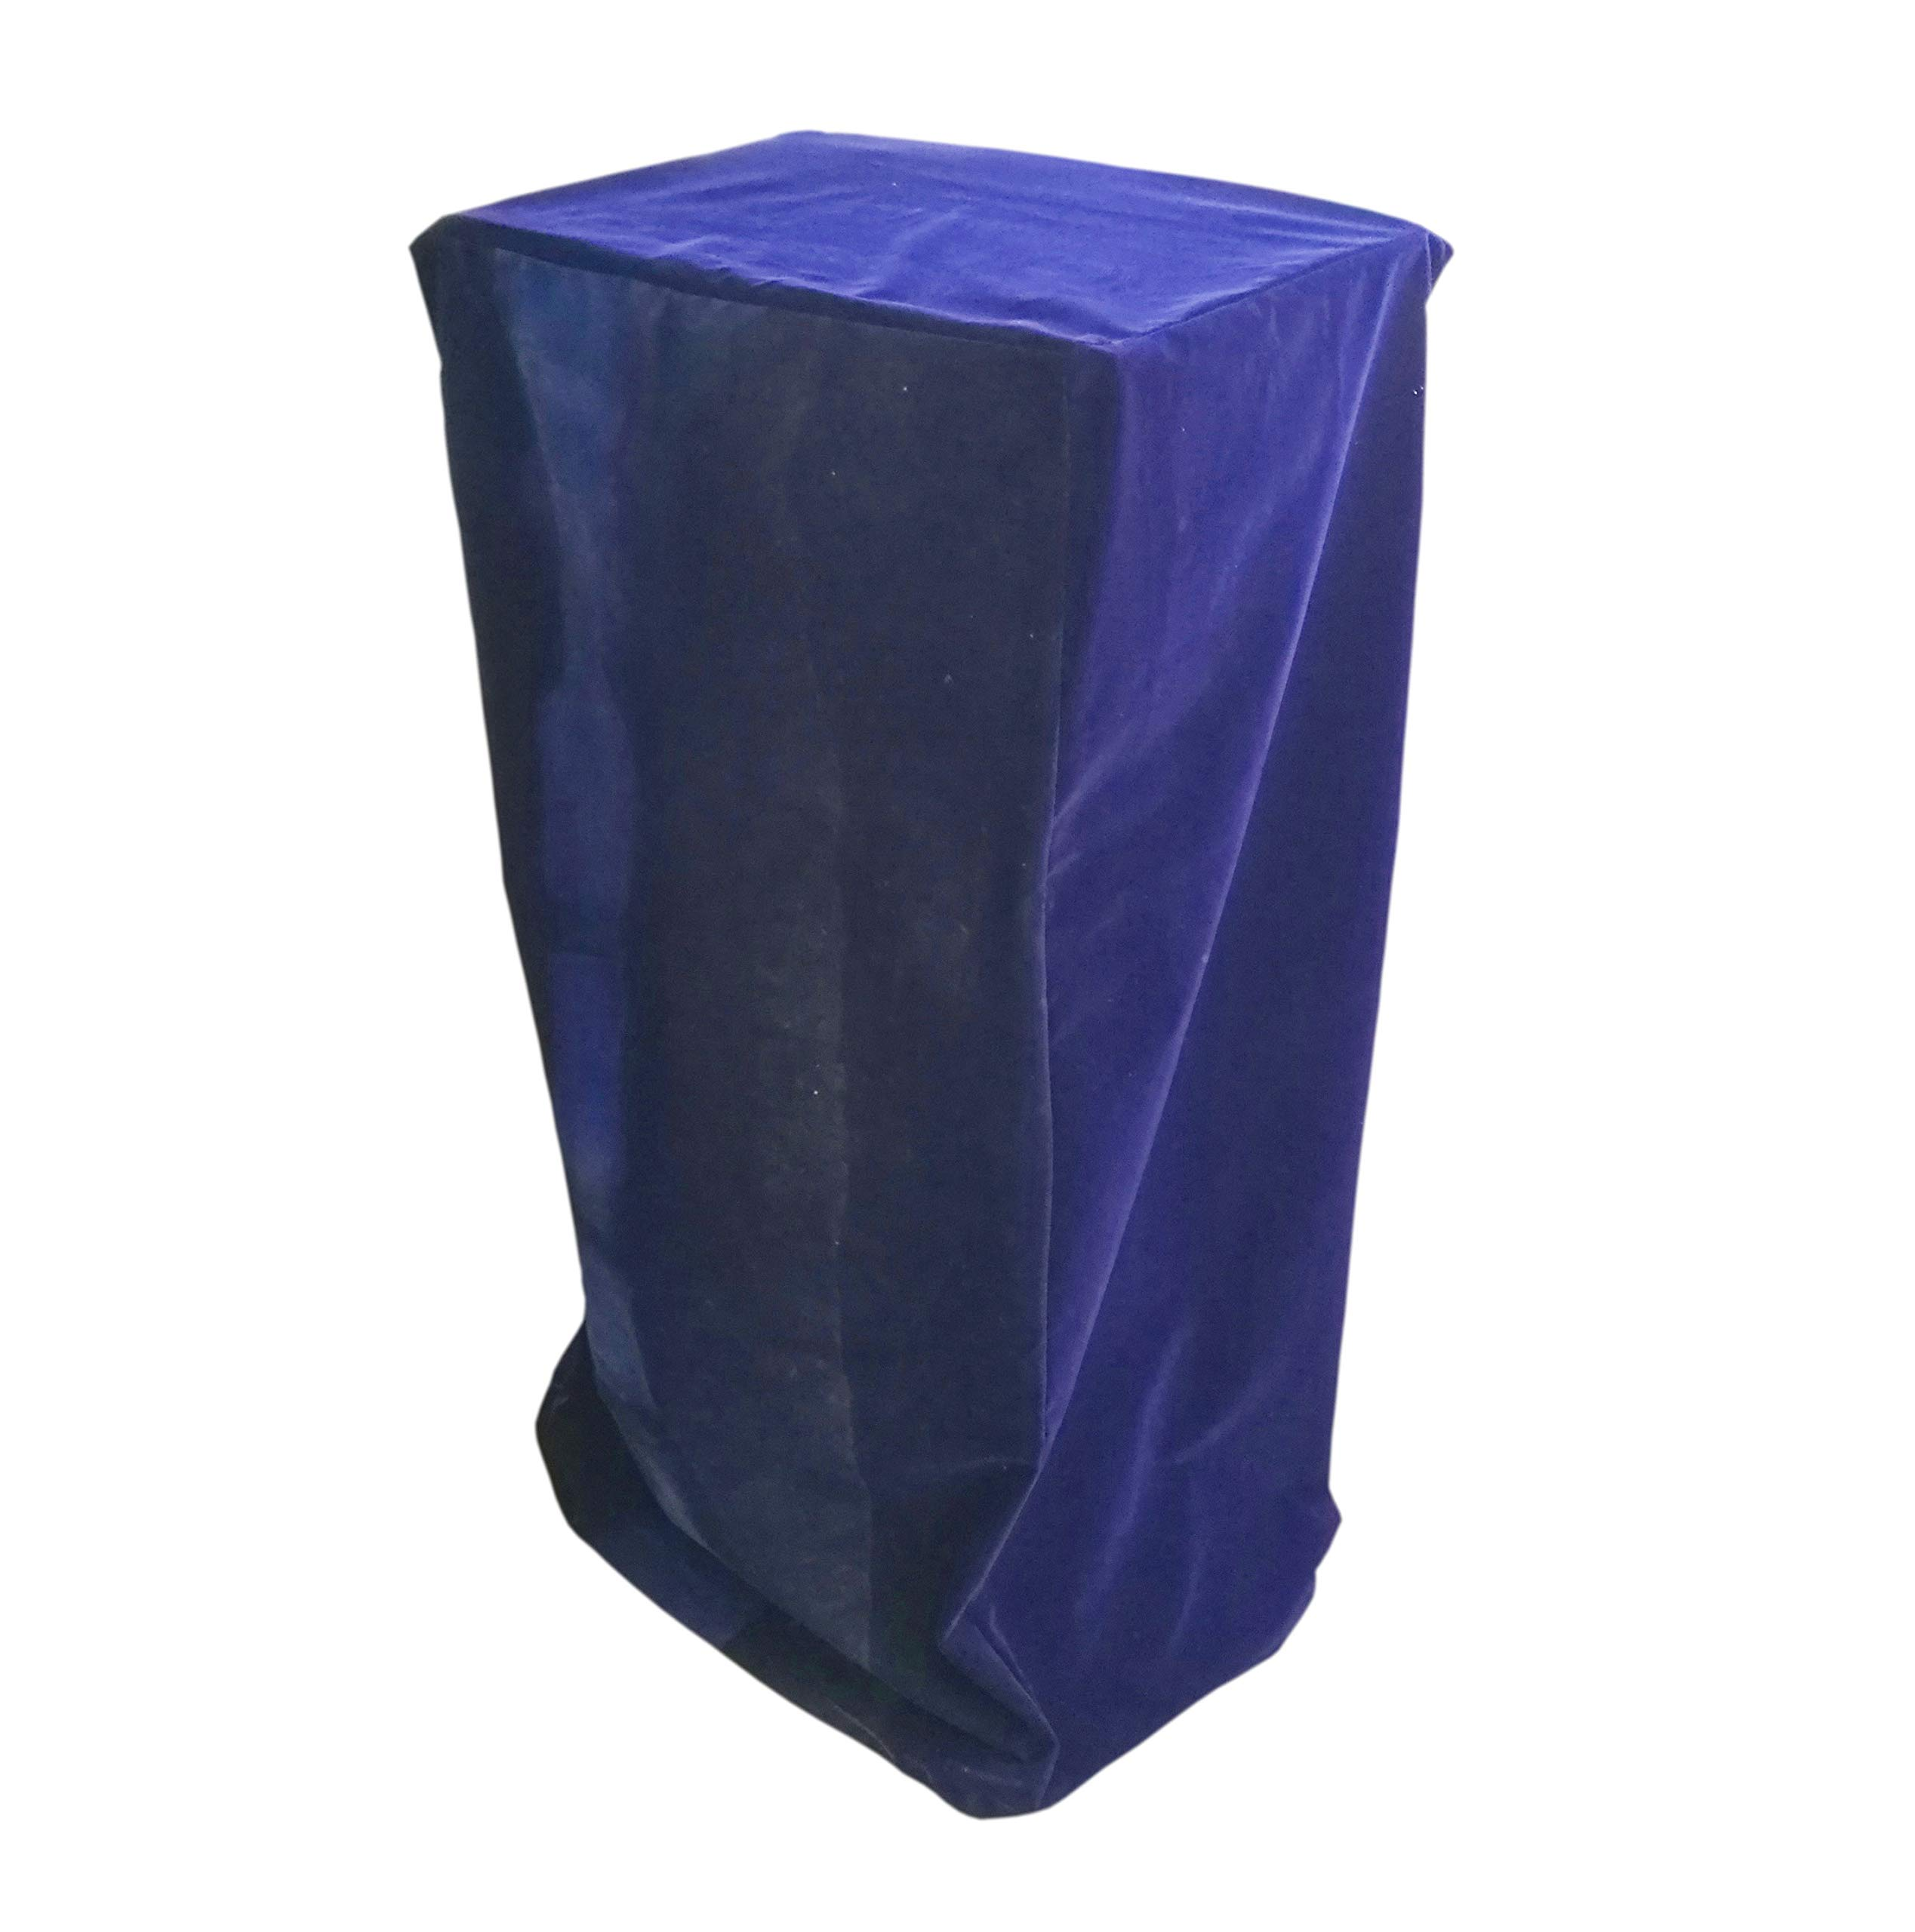 FixtureDisplays Podium Protective Cover Pulpit Cover Lectern Padded Cover 24.2''W x 49''H x 17.7''D 1803-8-BLUE-FBA Fulfilment by Amazon